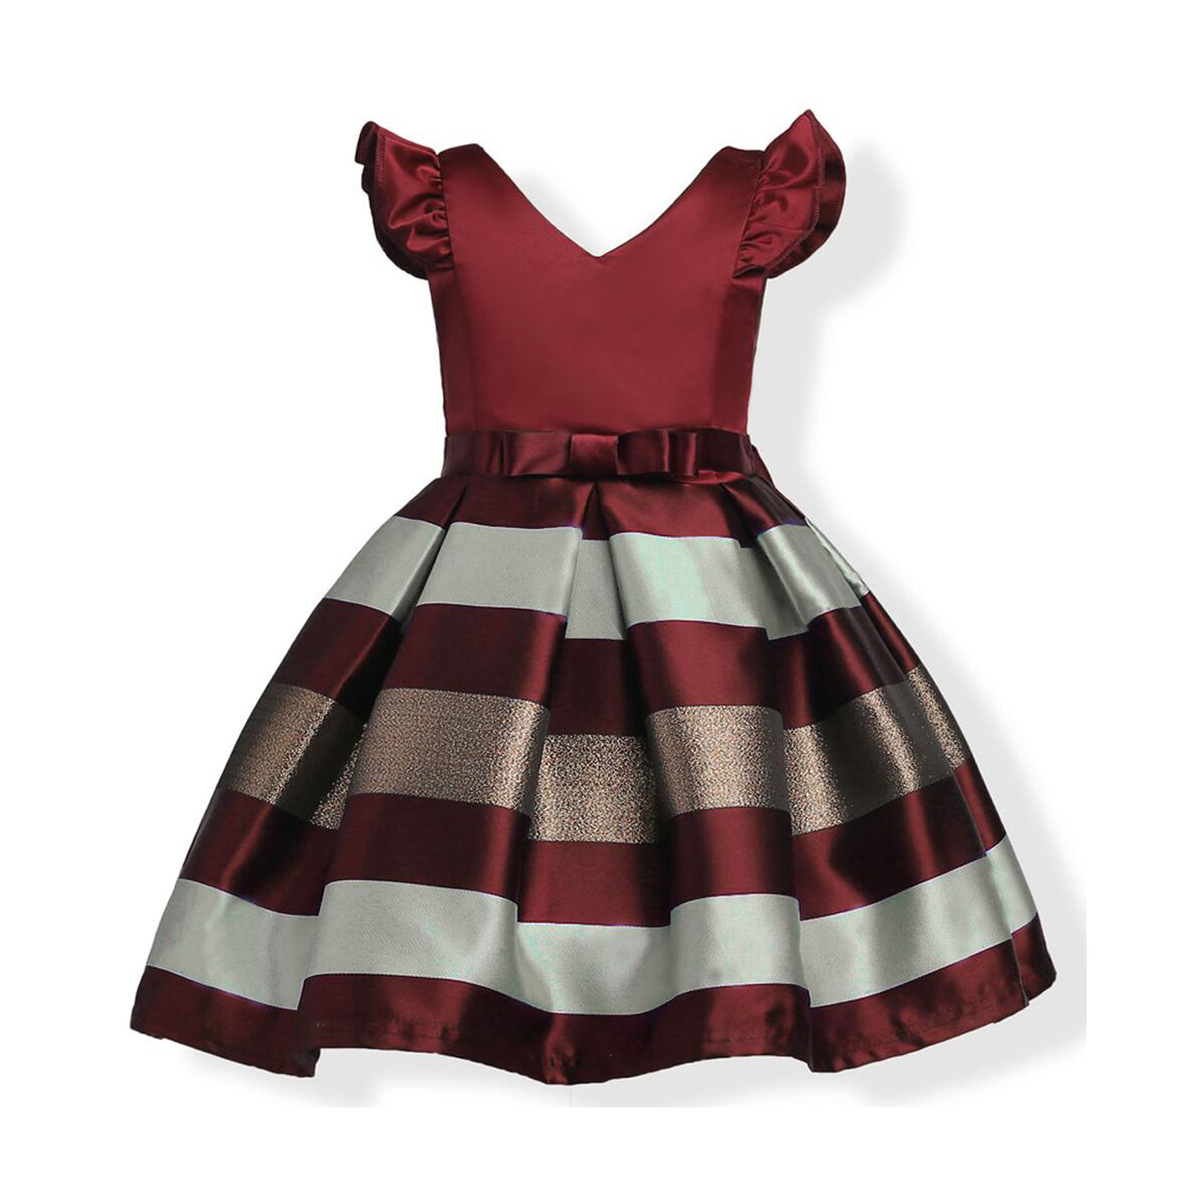 Europe And The United States New Summer Children's Dress Girls Flower Bow Striped Princess Dress #2 2017 spring and summer fashion girls clothing europe and the united states wind dress long sleeved lace princess peng peng dress